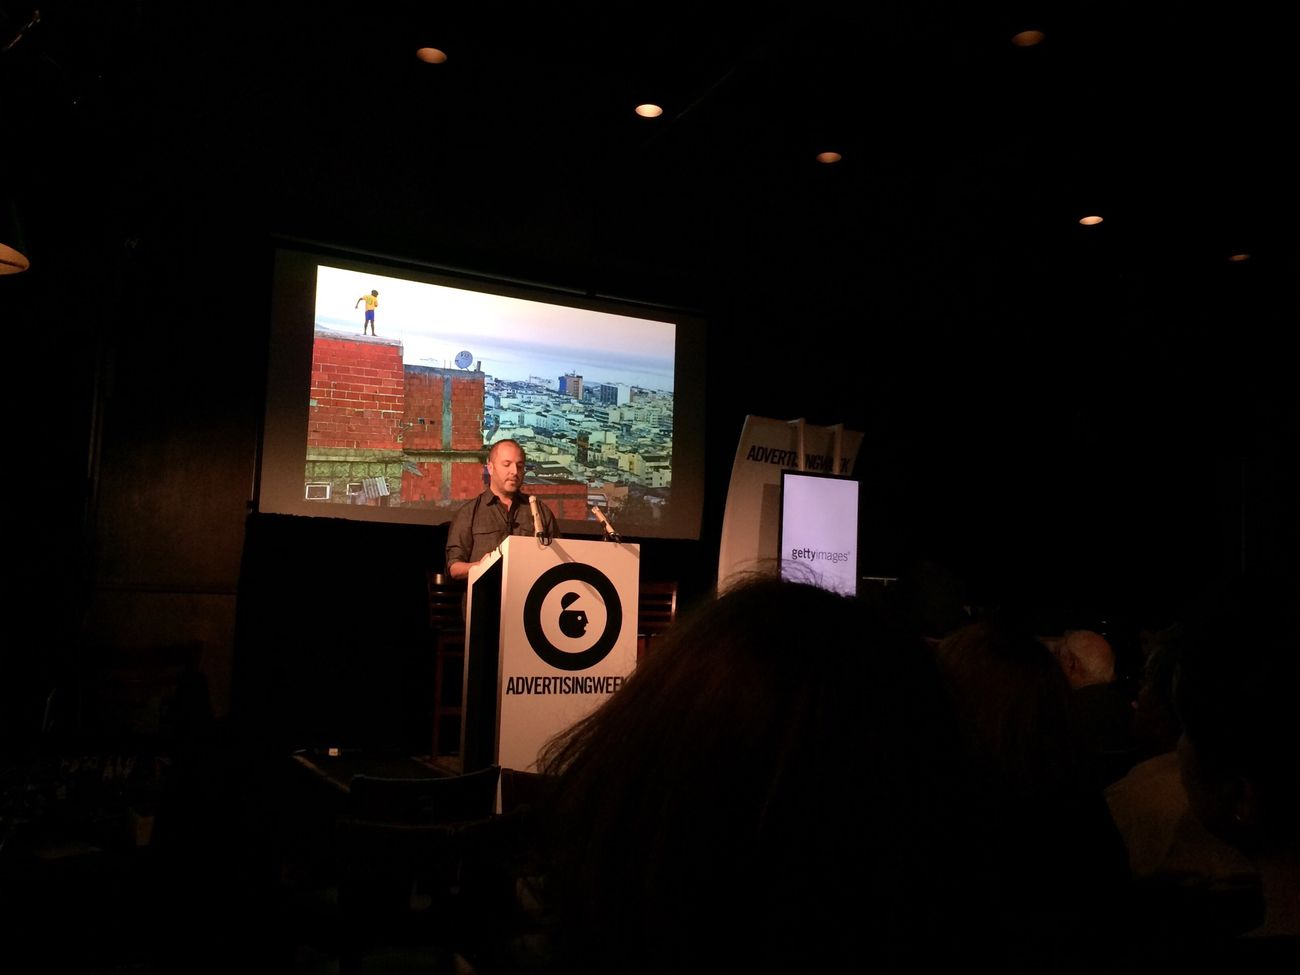 Mario Tama speaks about documenting the Favelas of Rio de Janeiro on October 02, 2014 at B.B. Kings Blues Club in New York City. #AWXI